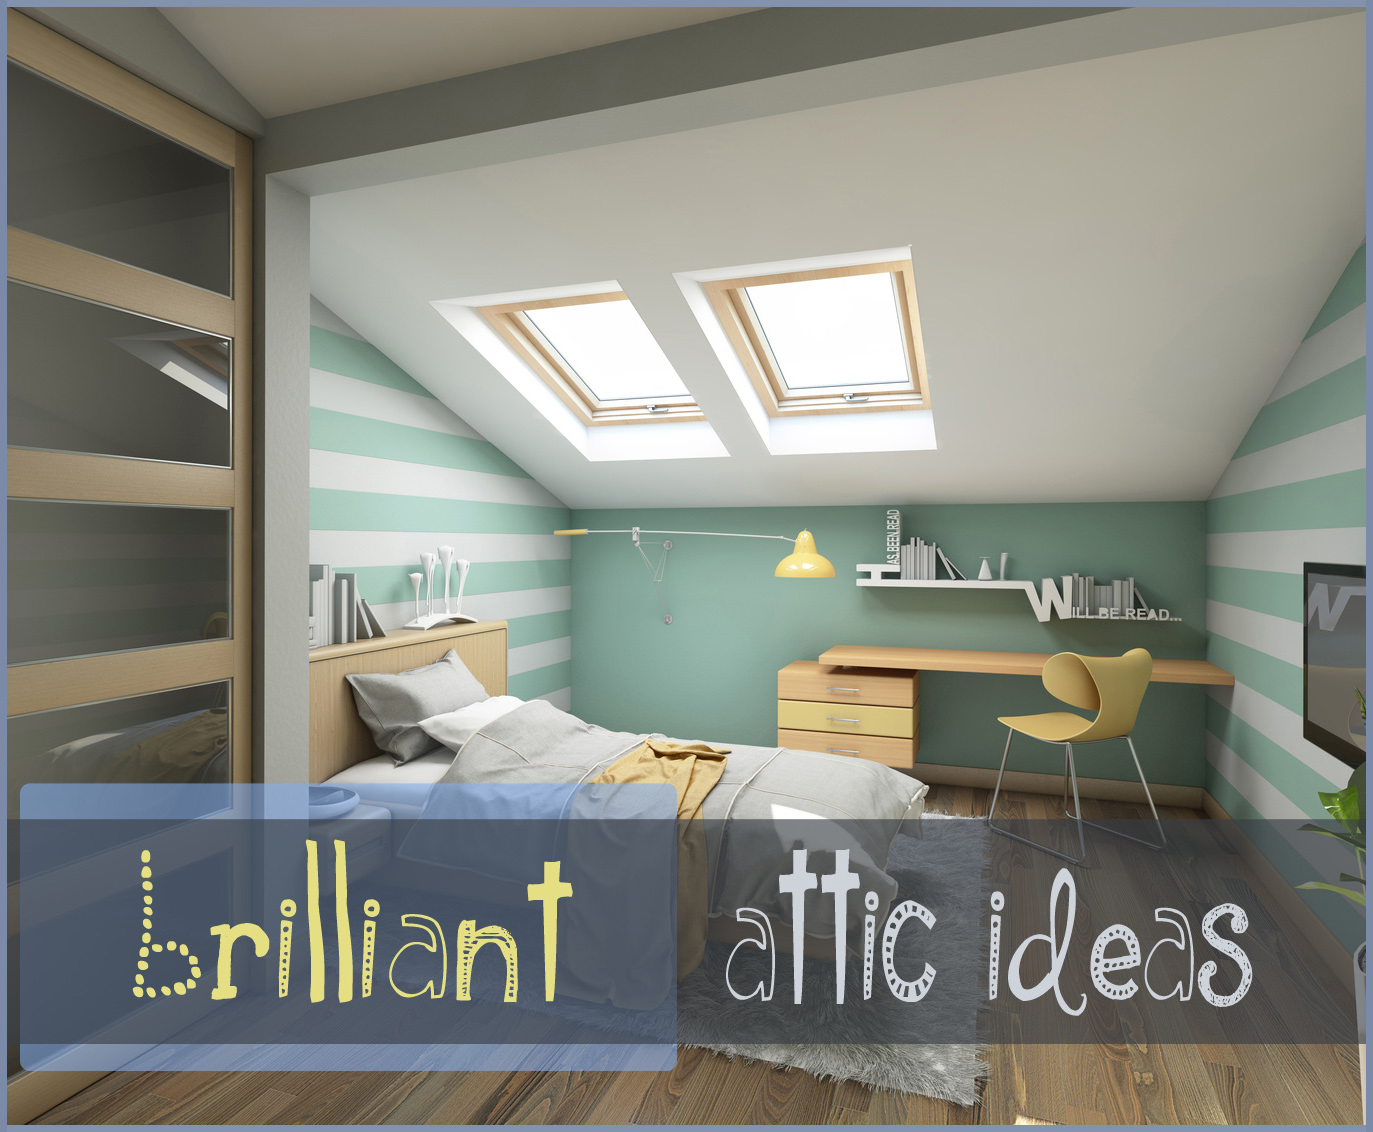 Attic Space Ideas 10 Fancy Things You Can Make Out Of Your Attic Space